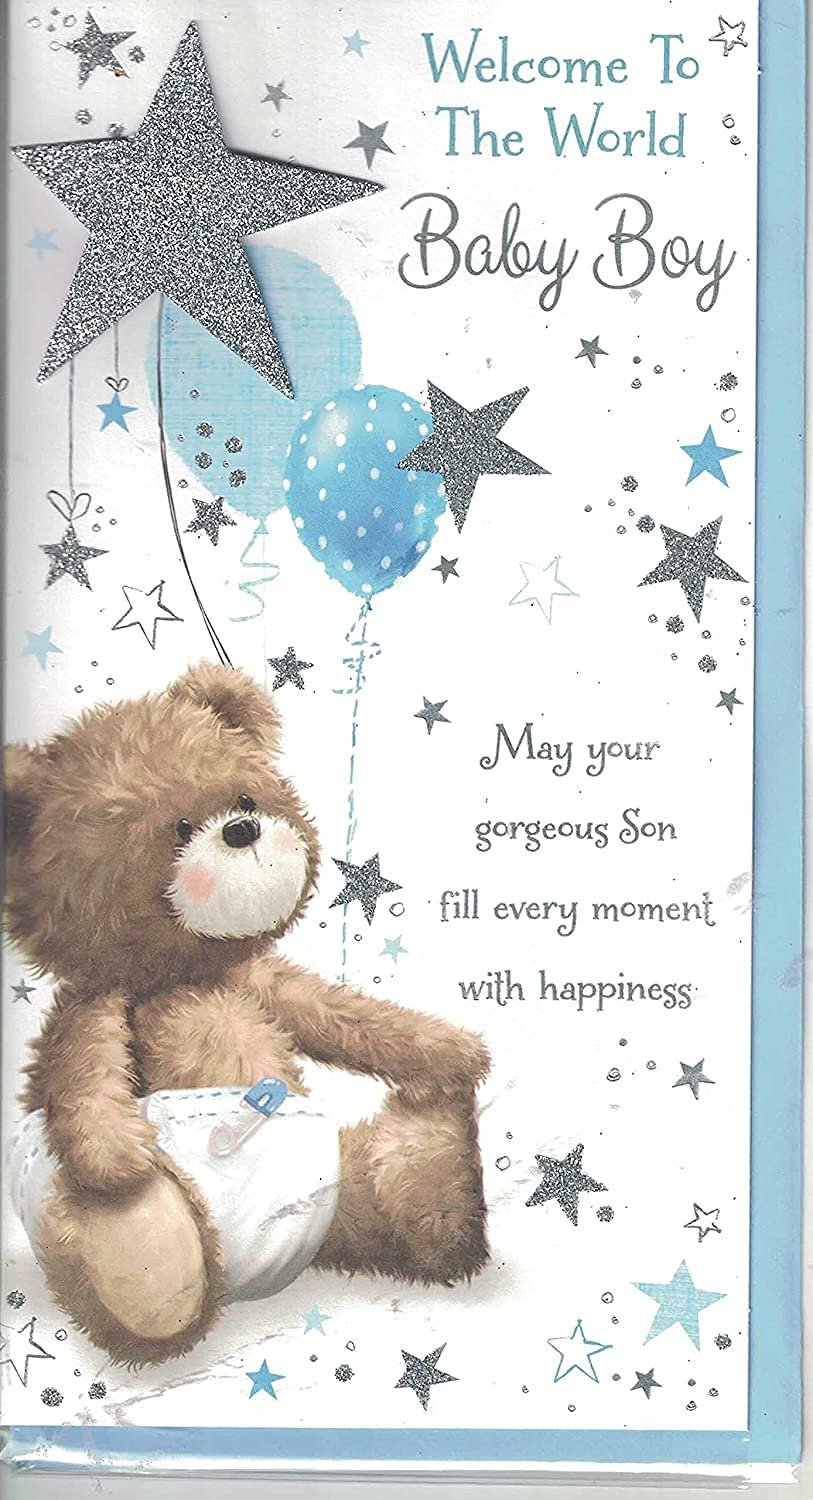 Prelude New Baby Boy Card ~ Congratulations On The Birth Of Your Beautiful  Son ~ Slim Baby Mobile Card Size 21cm x 21cm